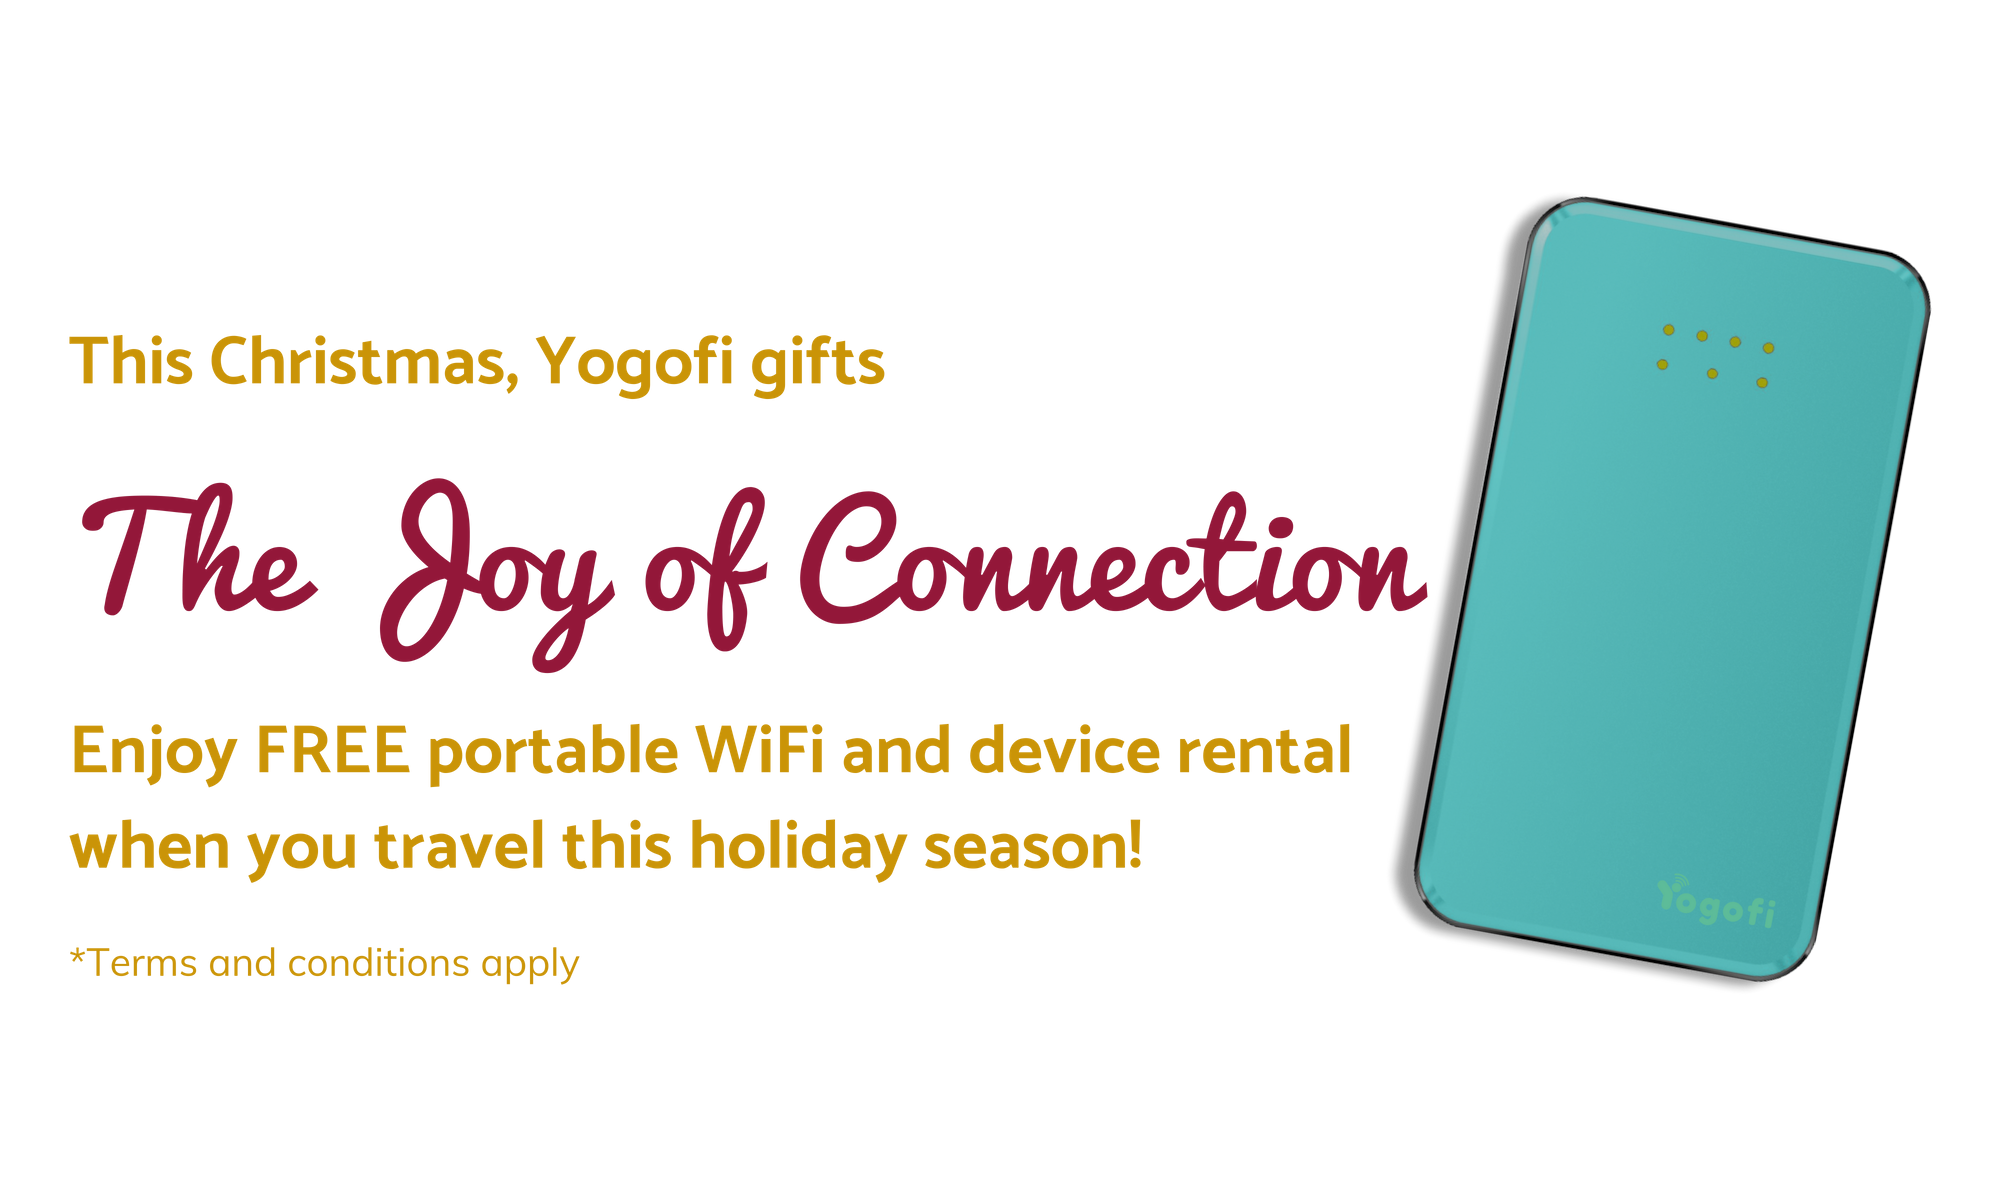 text+device Yogofi- The Joy of Connection- Website.png